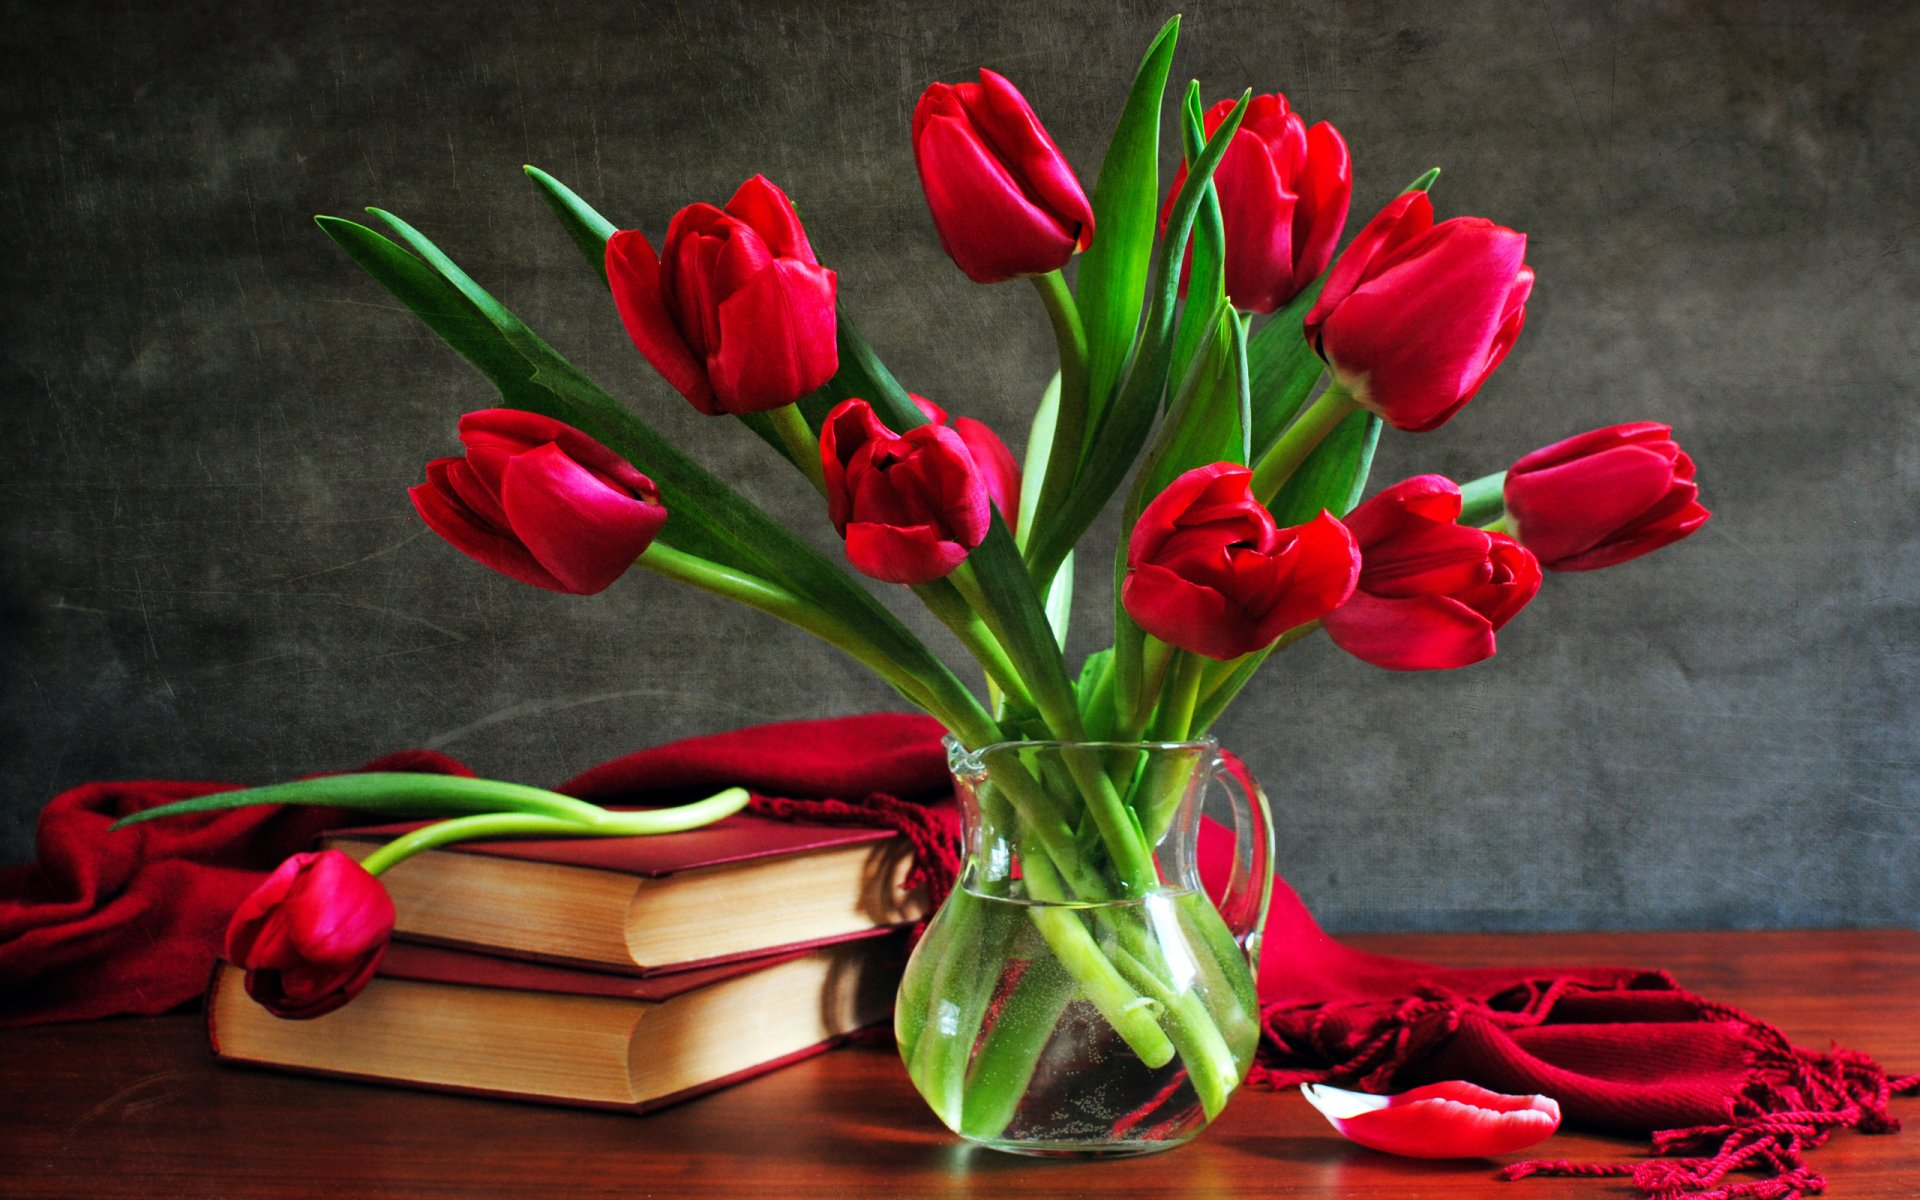 Photography - Still Life Glass Red Rose Tulip Red Flower Pitcher Scarf Book Flower Wallpaper